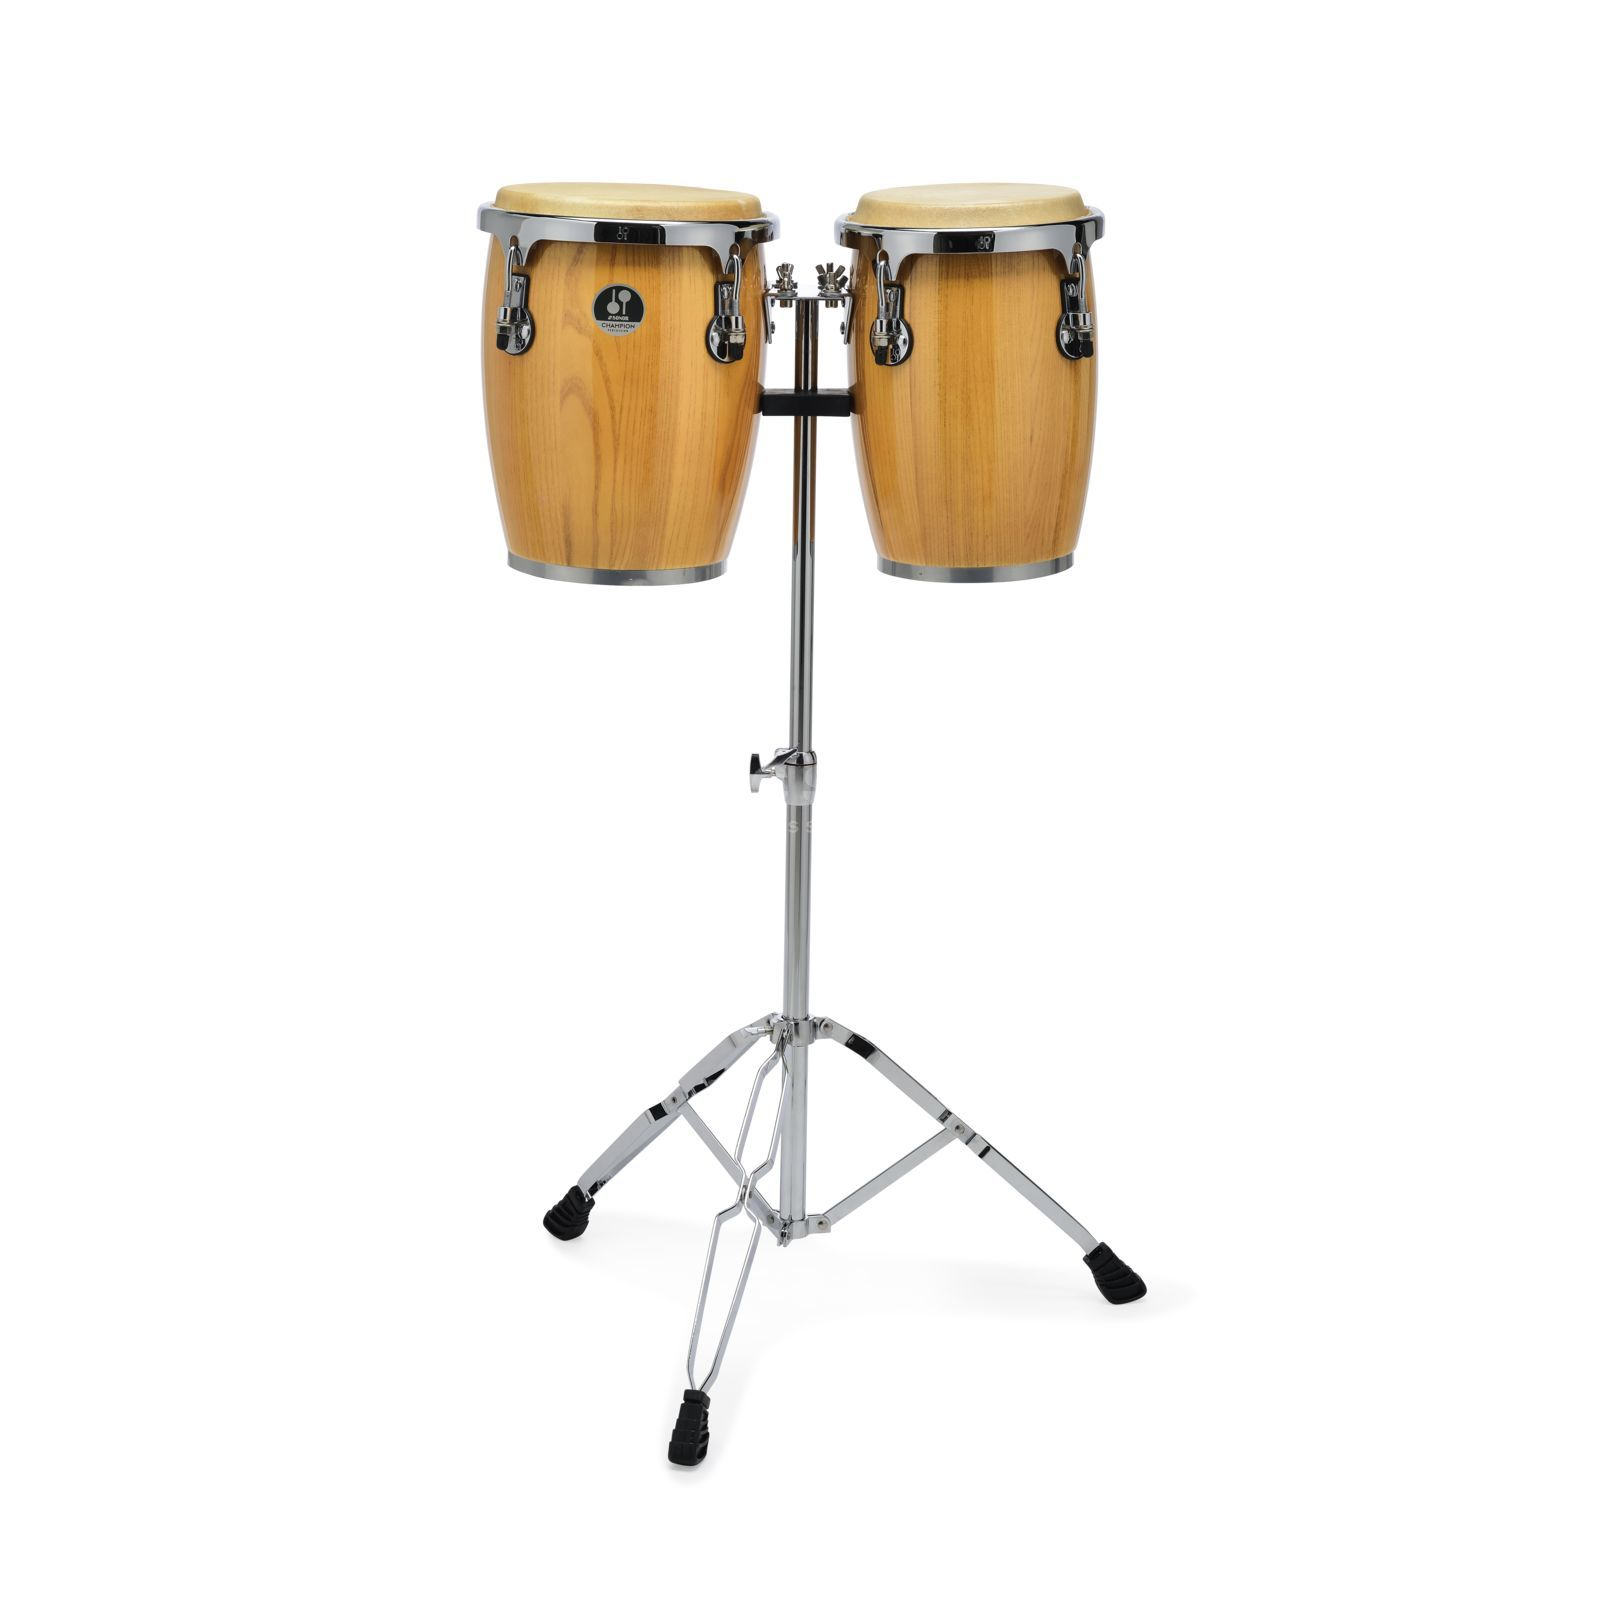 "Sonor Champion Mini Conga Set CMC0910NHG, 9"" & 10"" Natural Product Image"